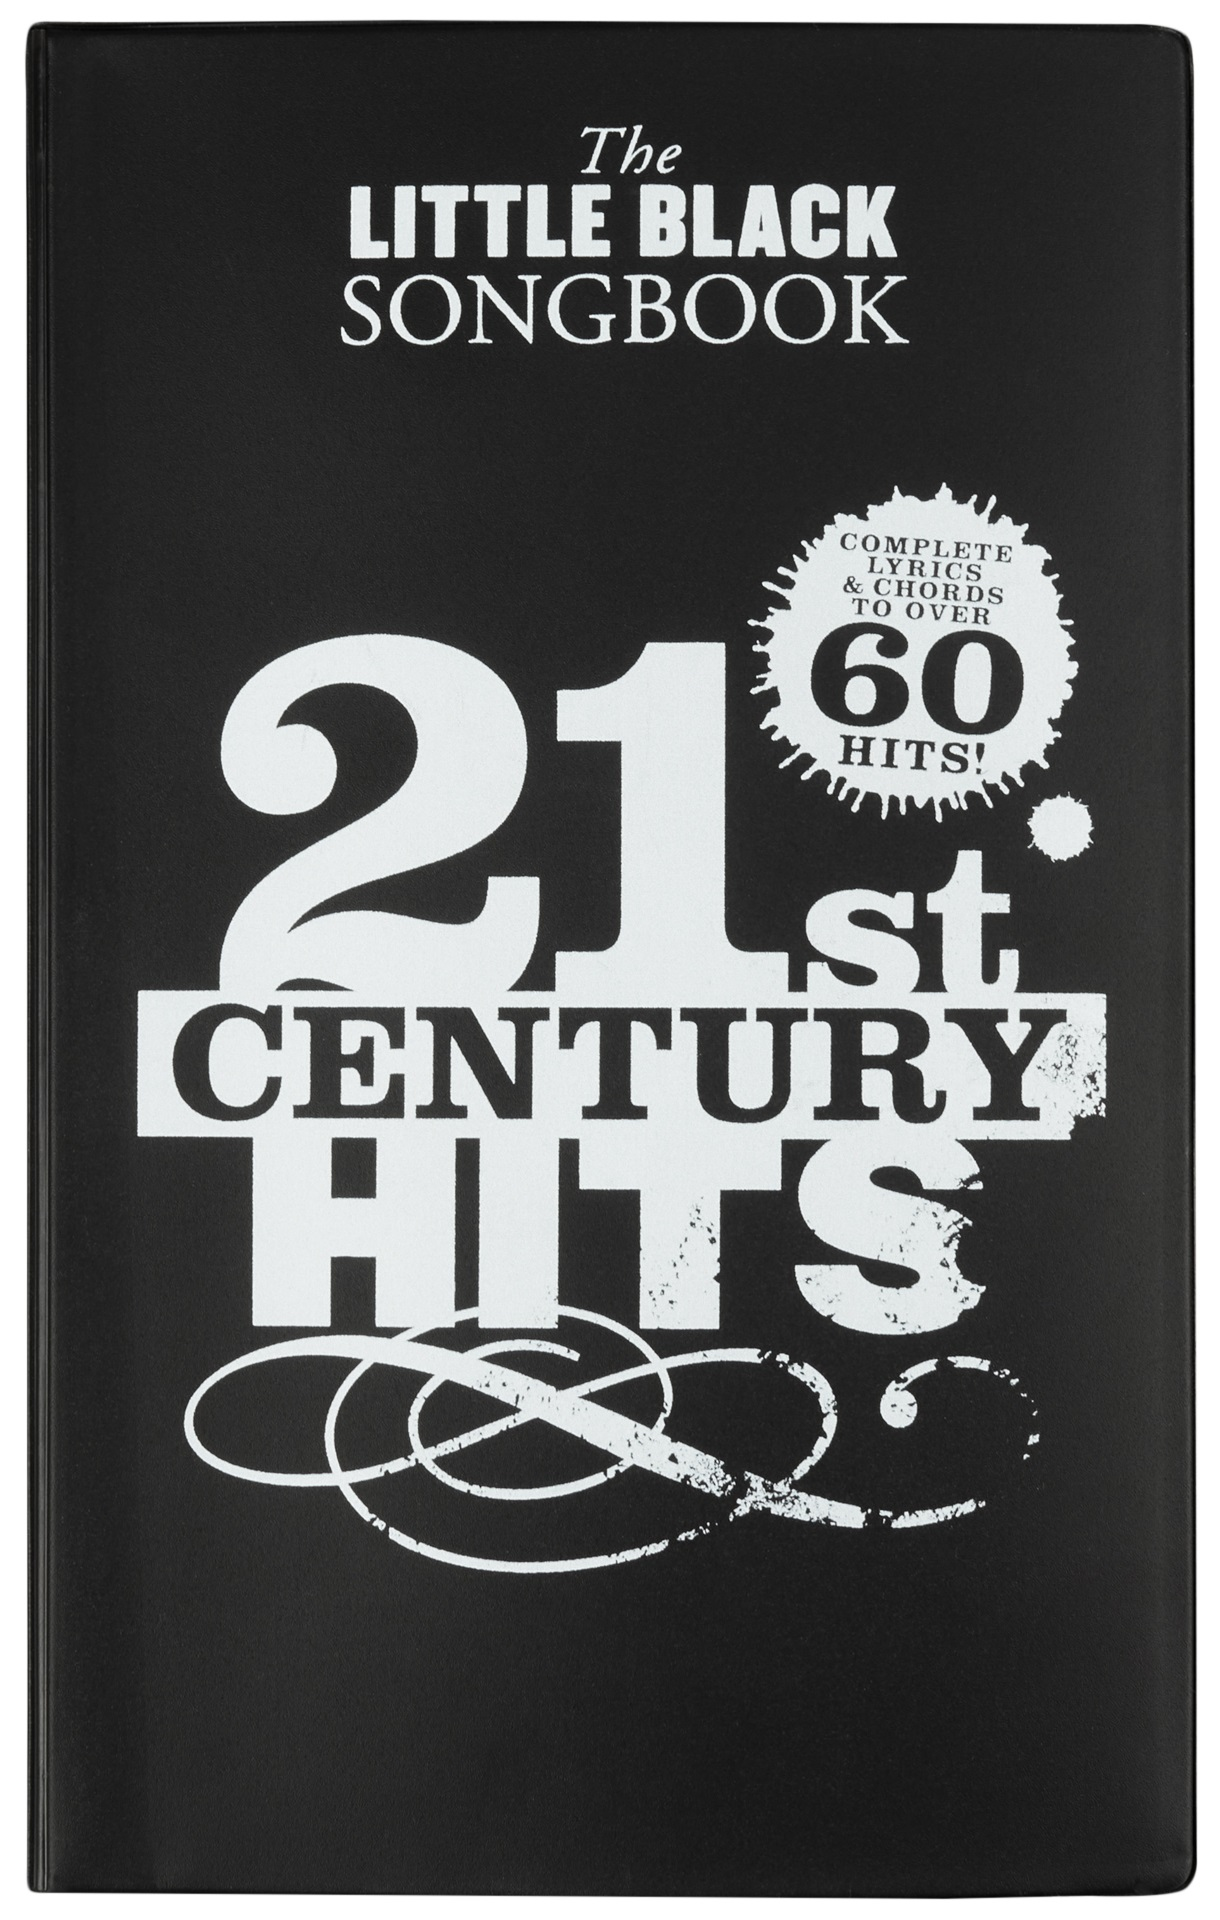 MS The Little Black Songbook: 21st Century Hits